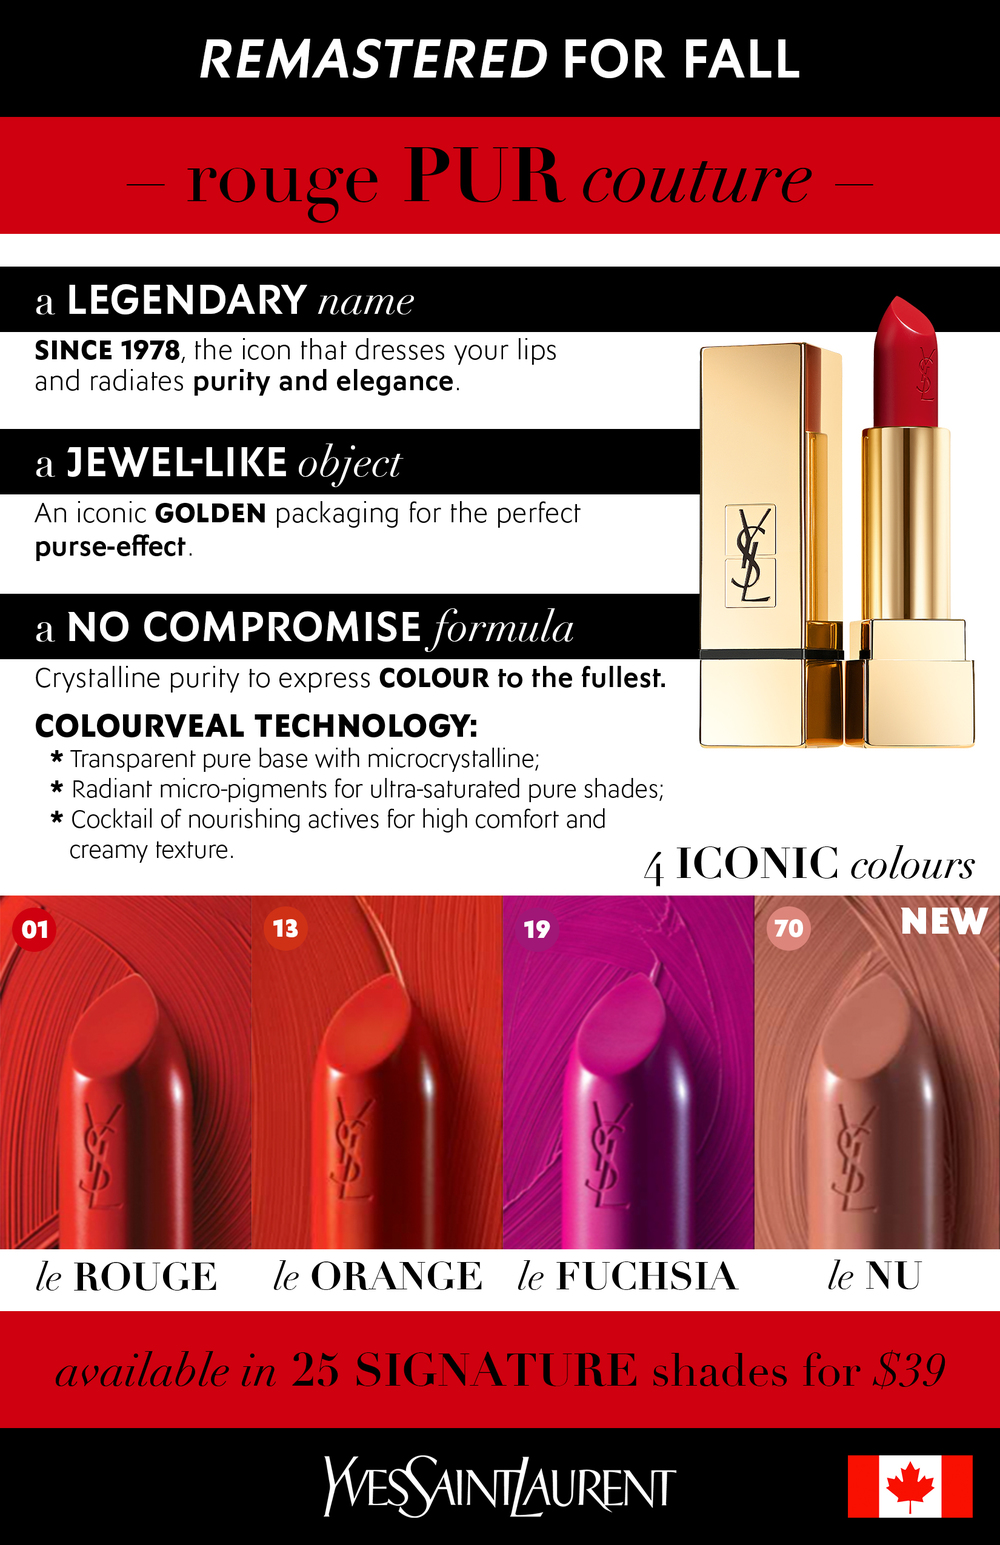 Design + copy of an informational handout for the August 2015 relaunch of the YSL Beauté Rouge Pur Couture lipstick